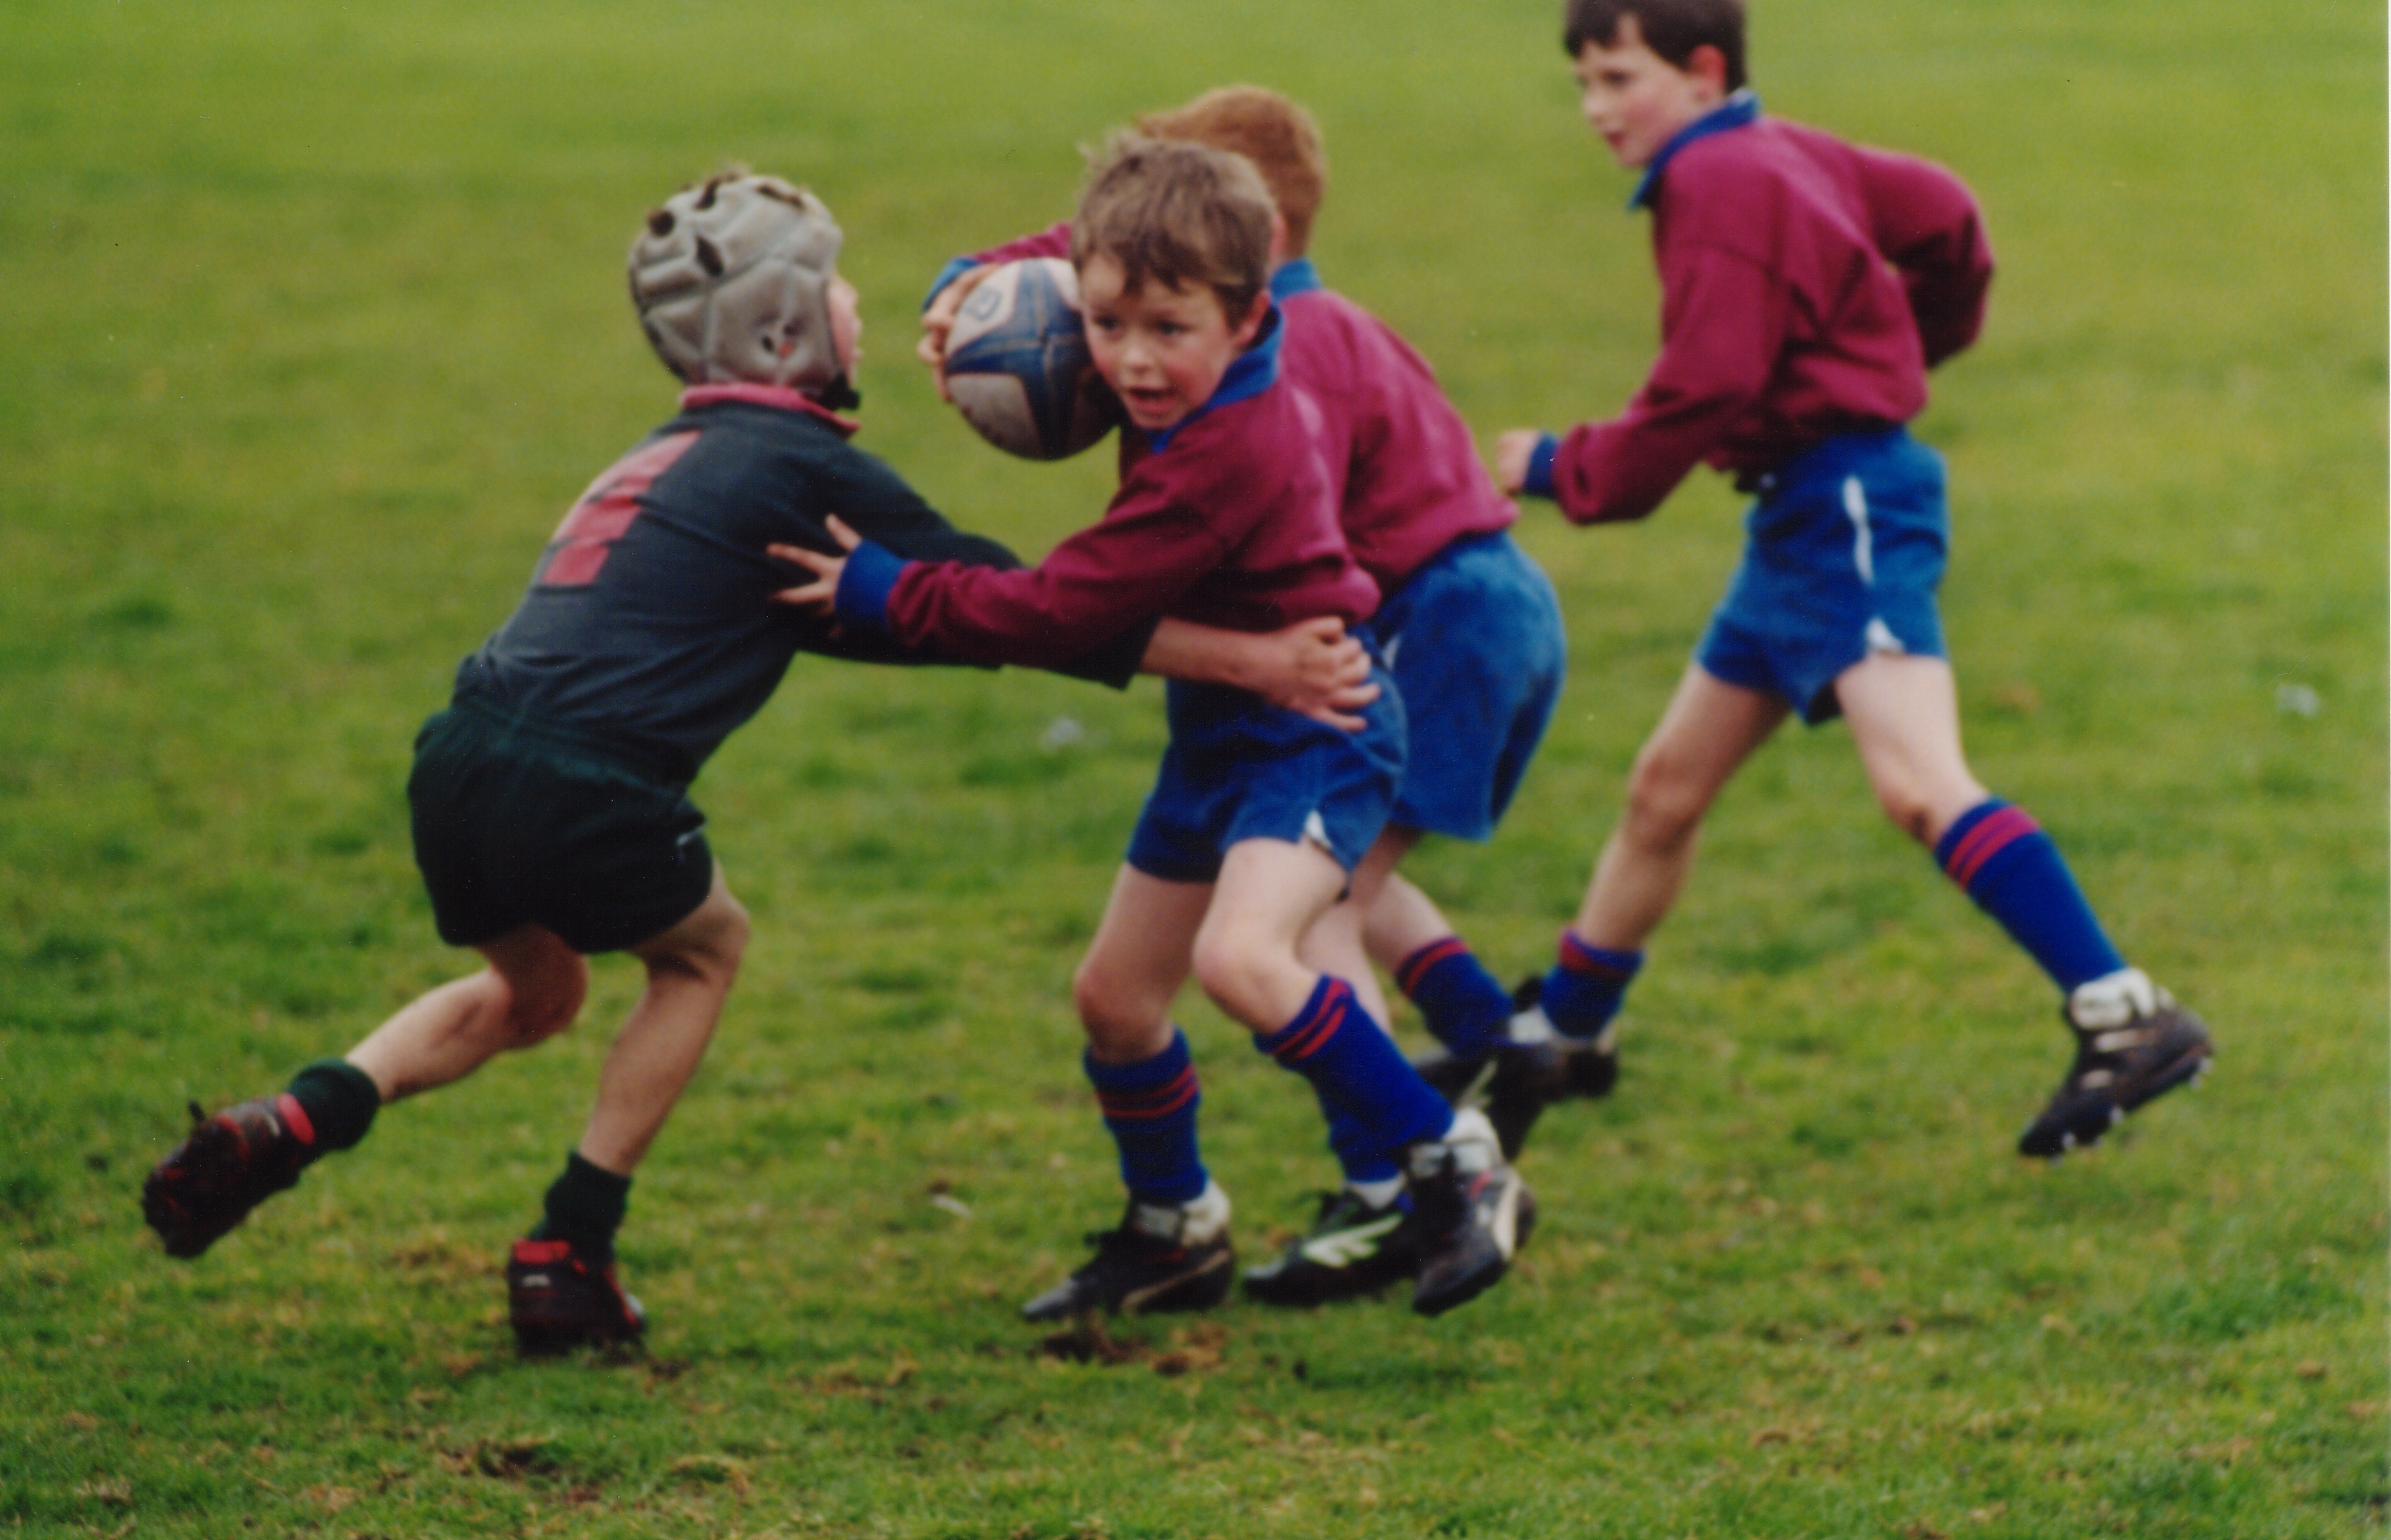 Jake-with-ball-2001-3